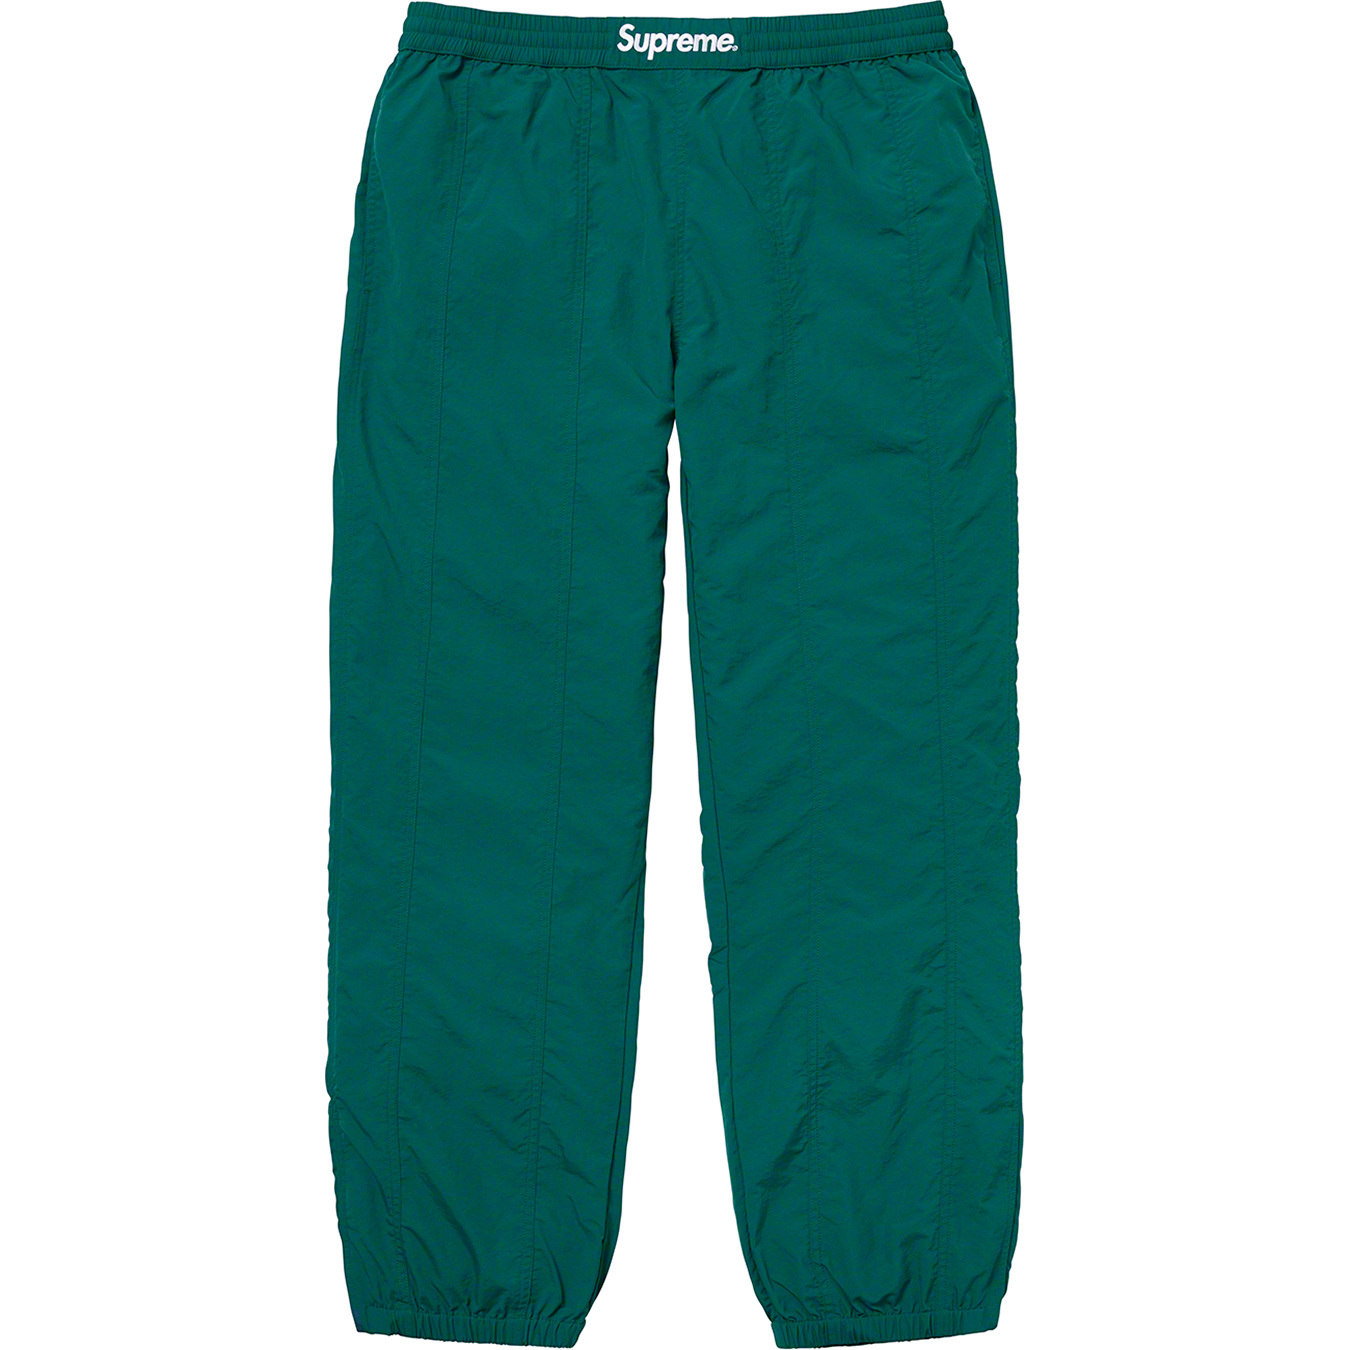 supreme-19aw-19fw-fall-winter-paneled-warm-up-pant